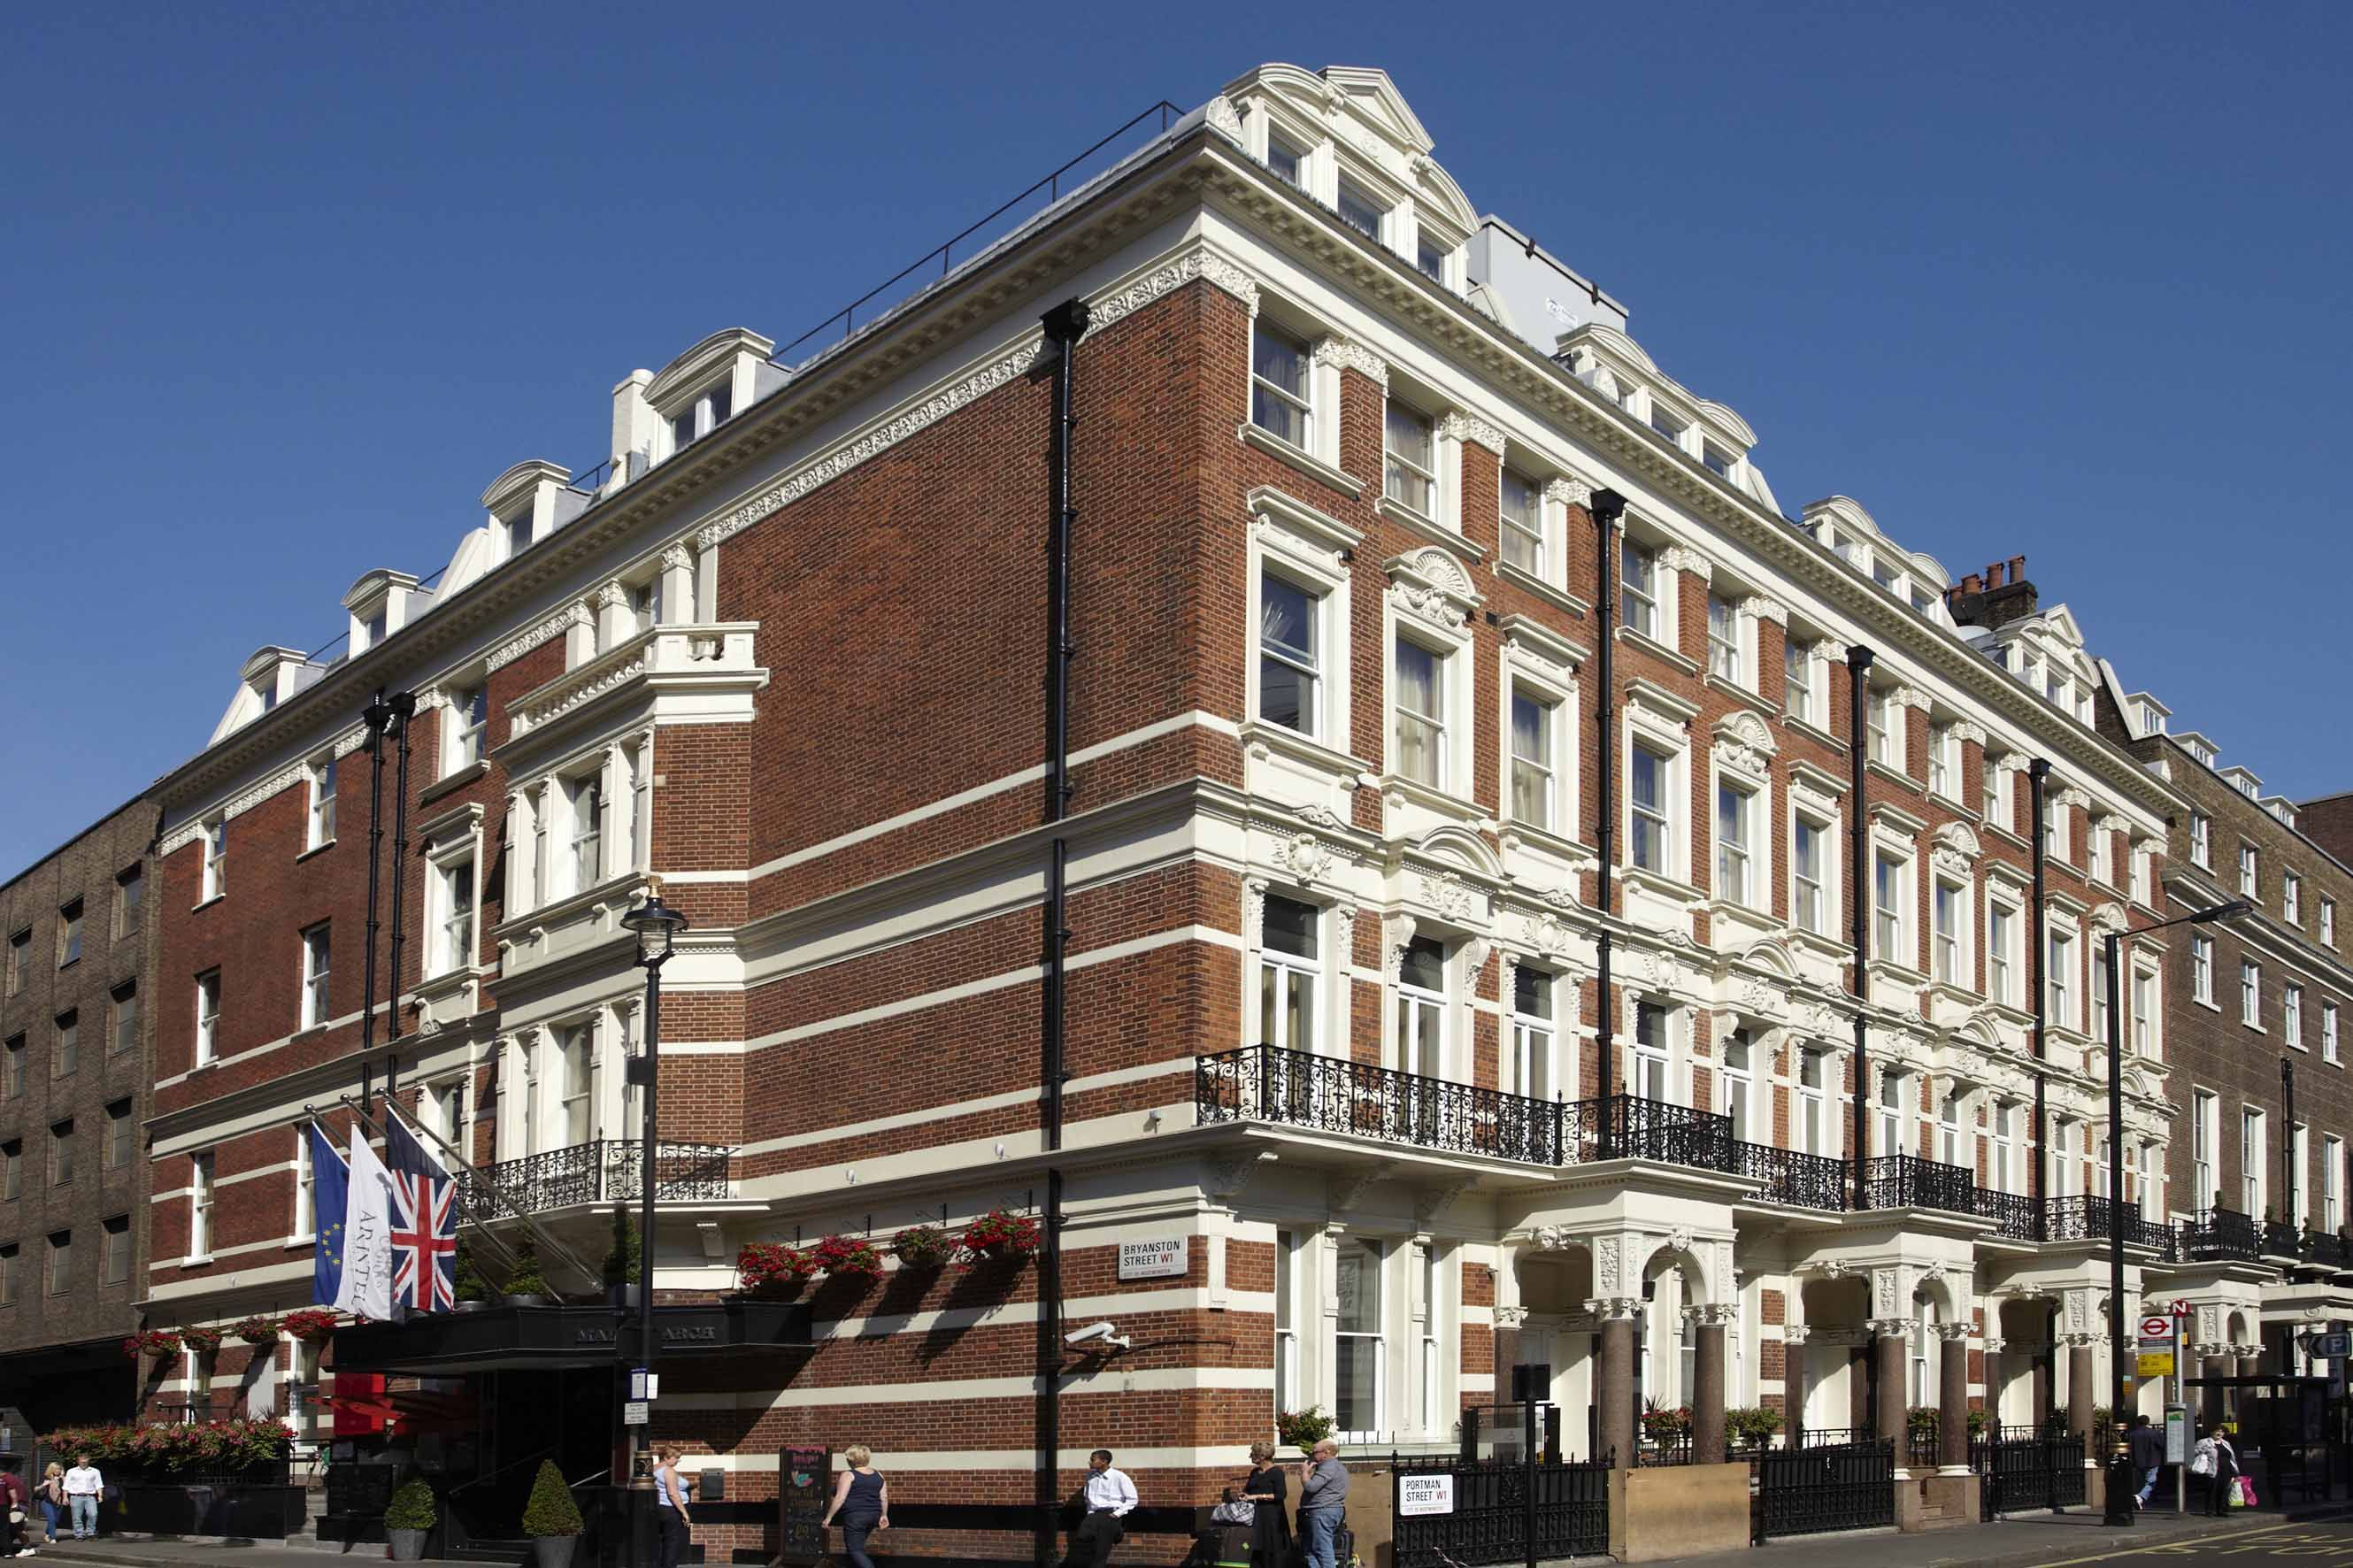 Doubletree By Hilton Hotel London Marble Arch Hilton Hotel London London Attractions Marble Arch London